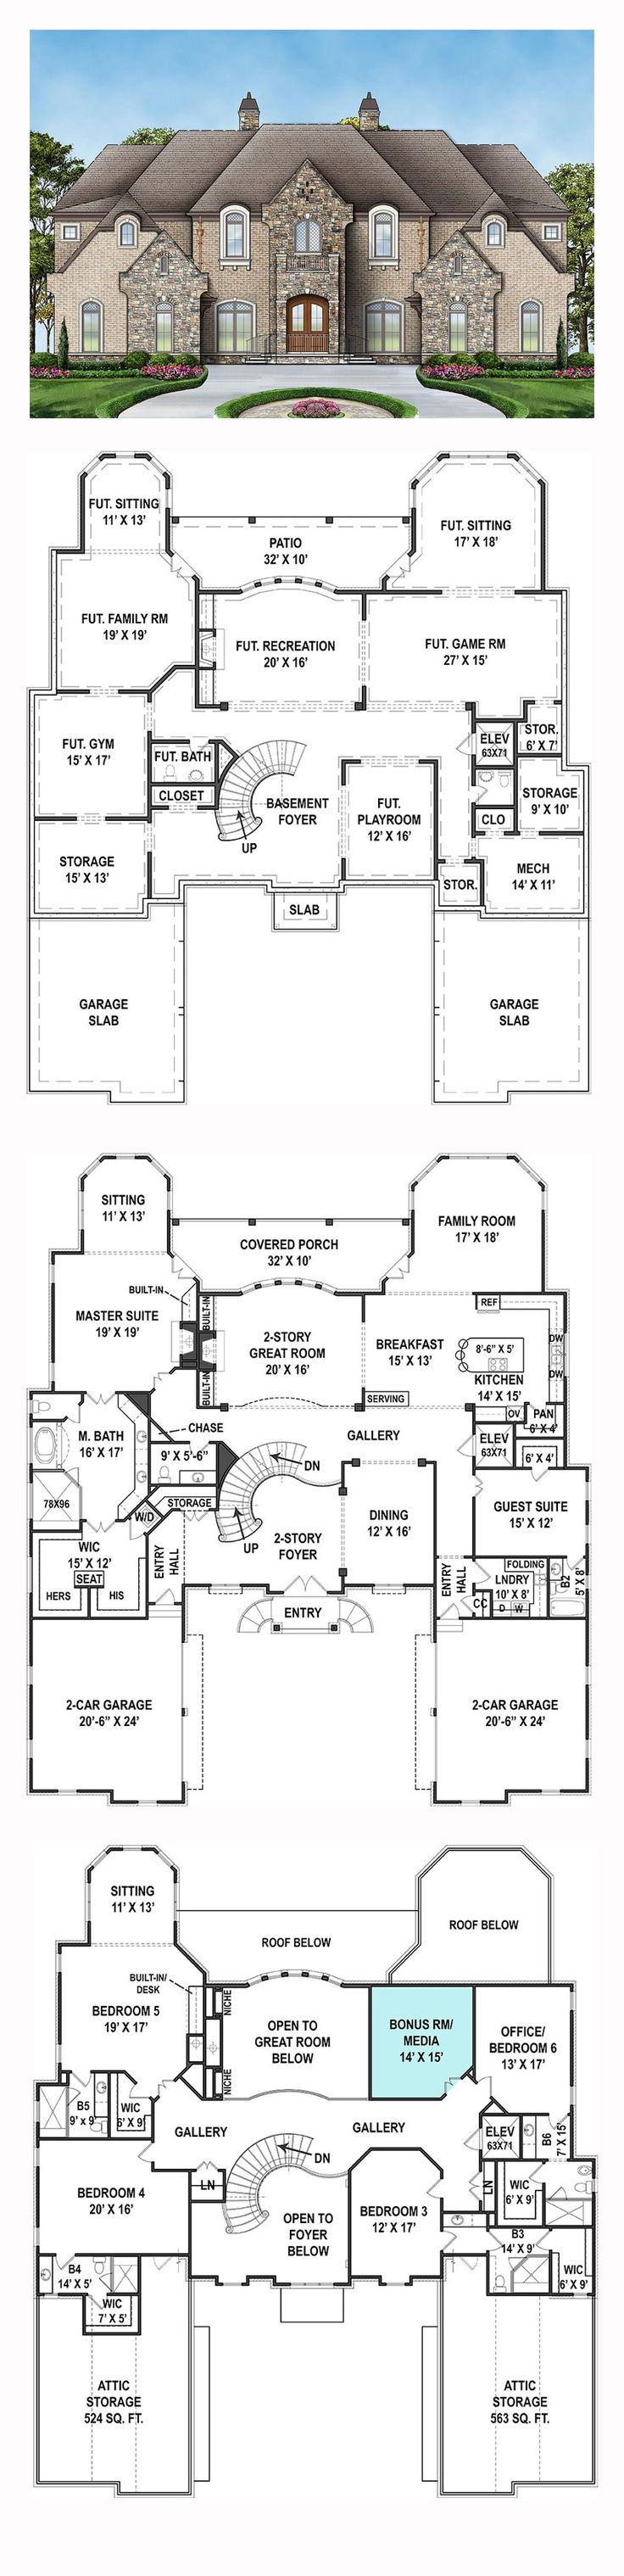 17 Best ideas about Beautiful House Plans on Pinterest Nice